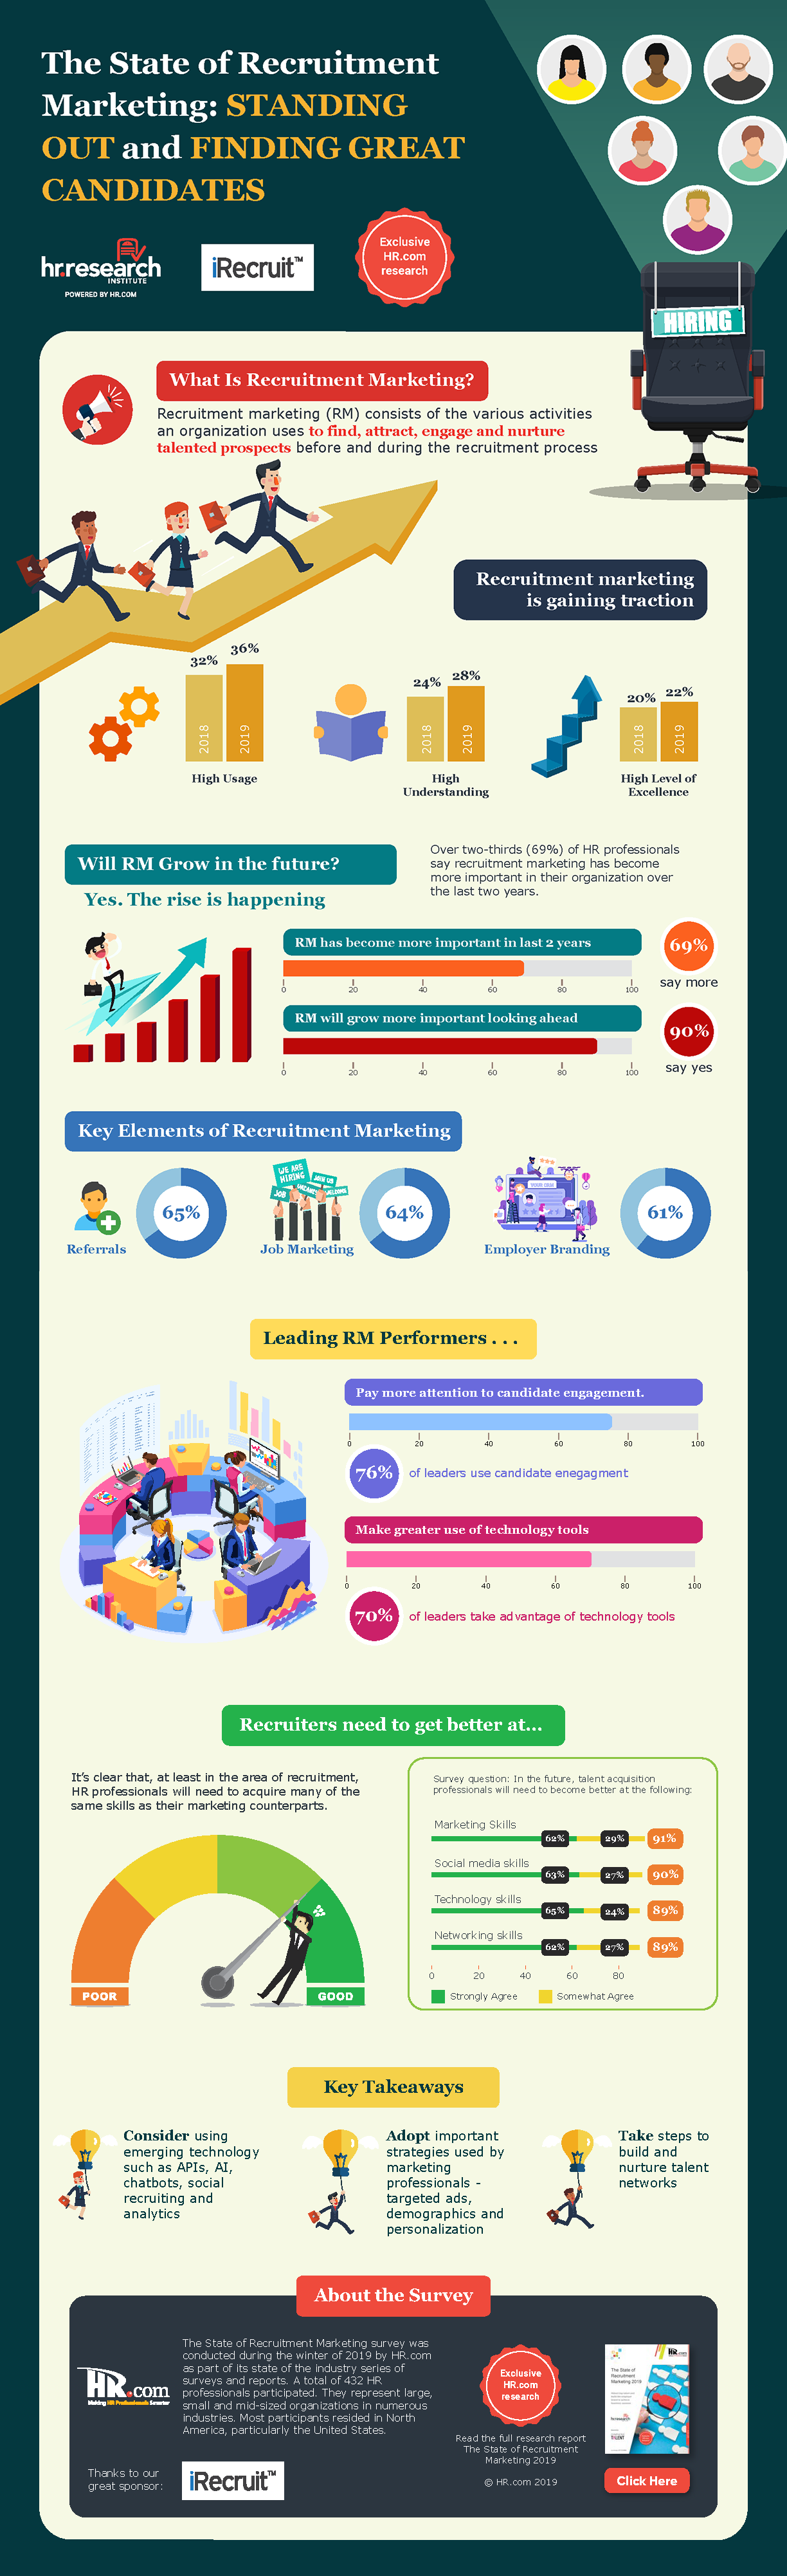 The State of Recruitment Marketing Infographic